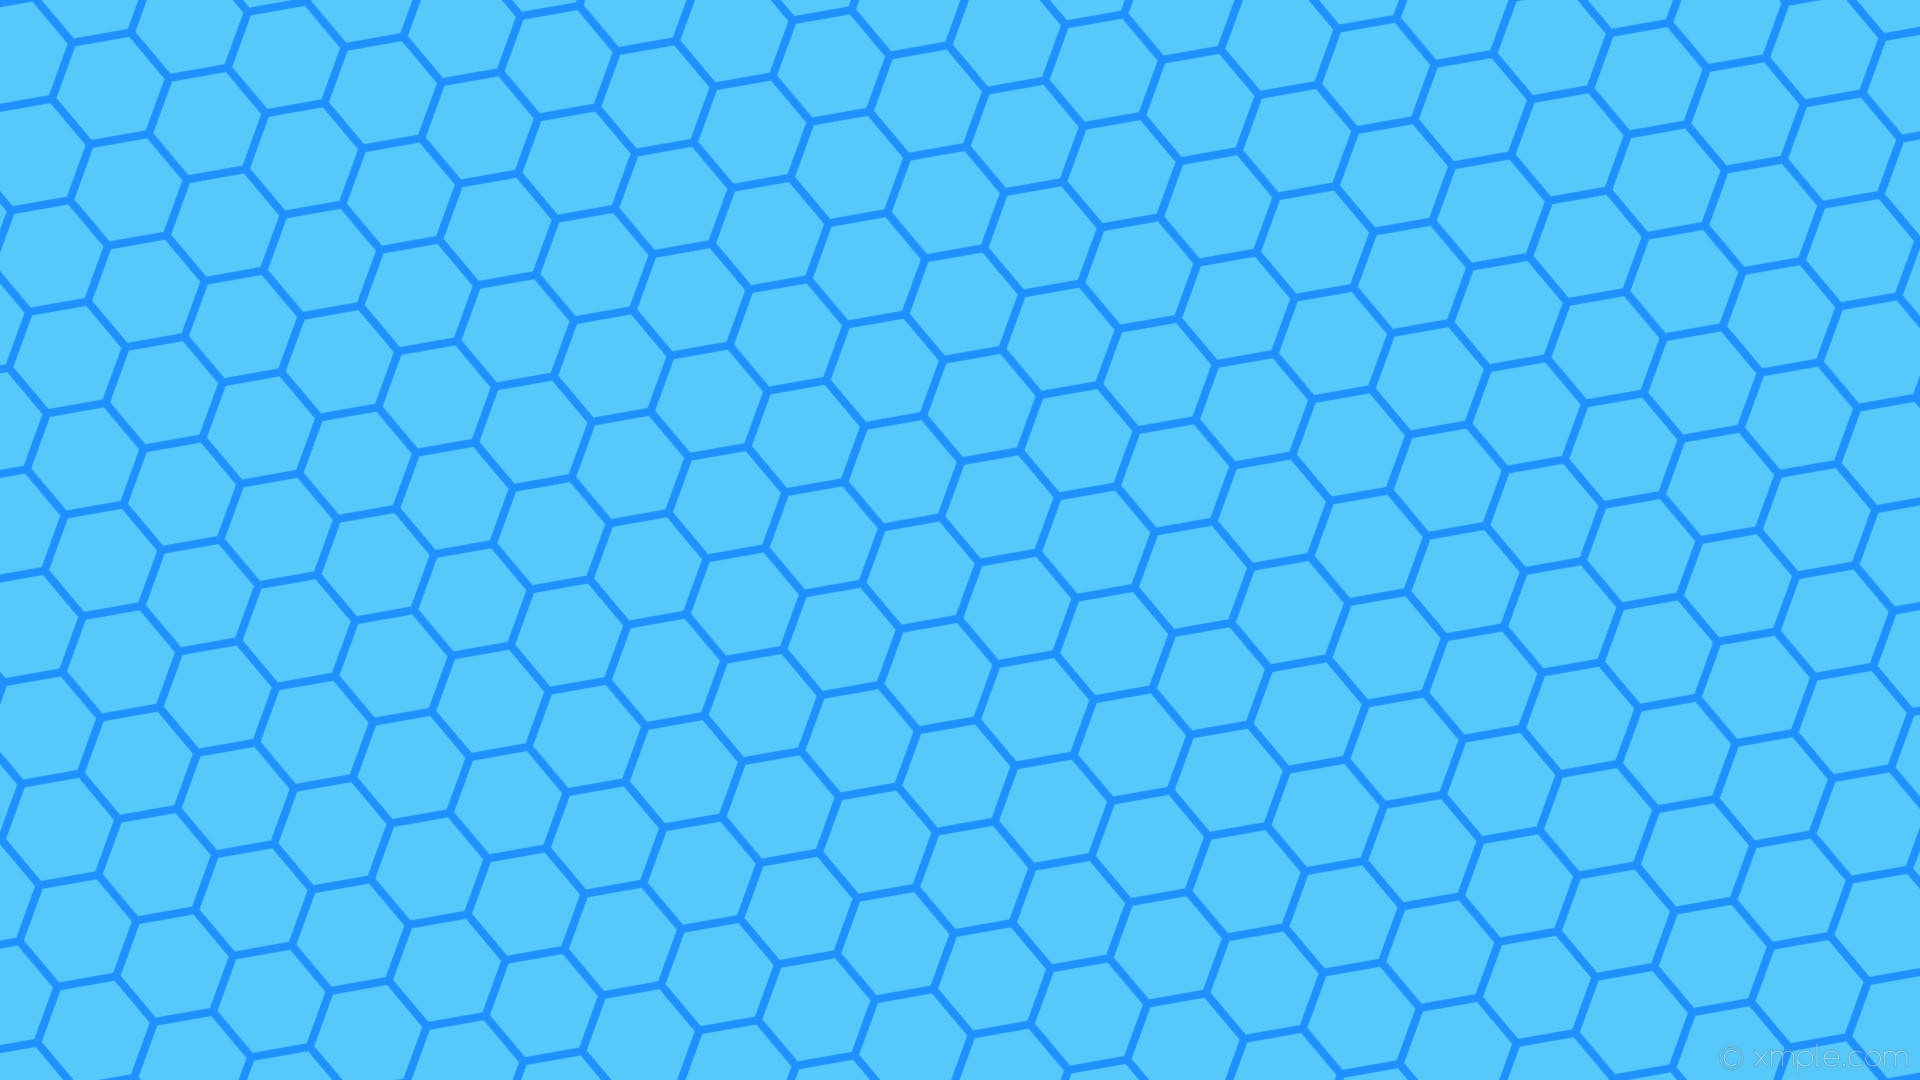 Res: 1920x1080, wallpaper hexagon blue azure beehive honeycomb dodger blue #56c8f9 #1e90ff  diagonal 40° 8px